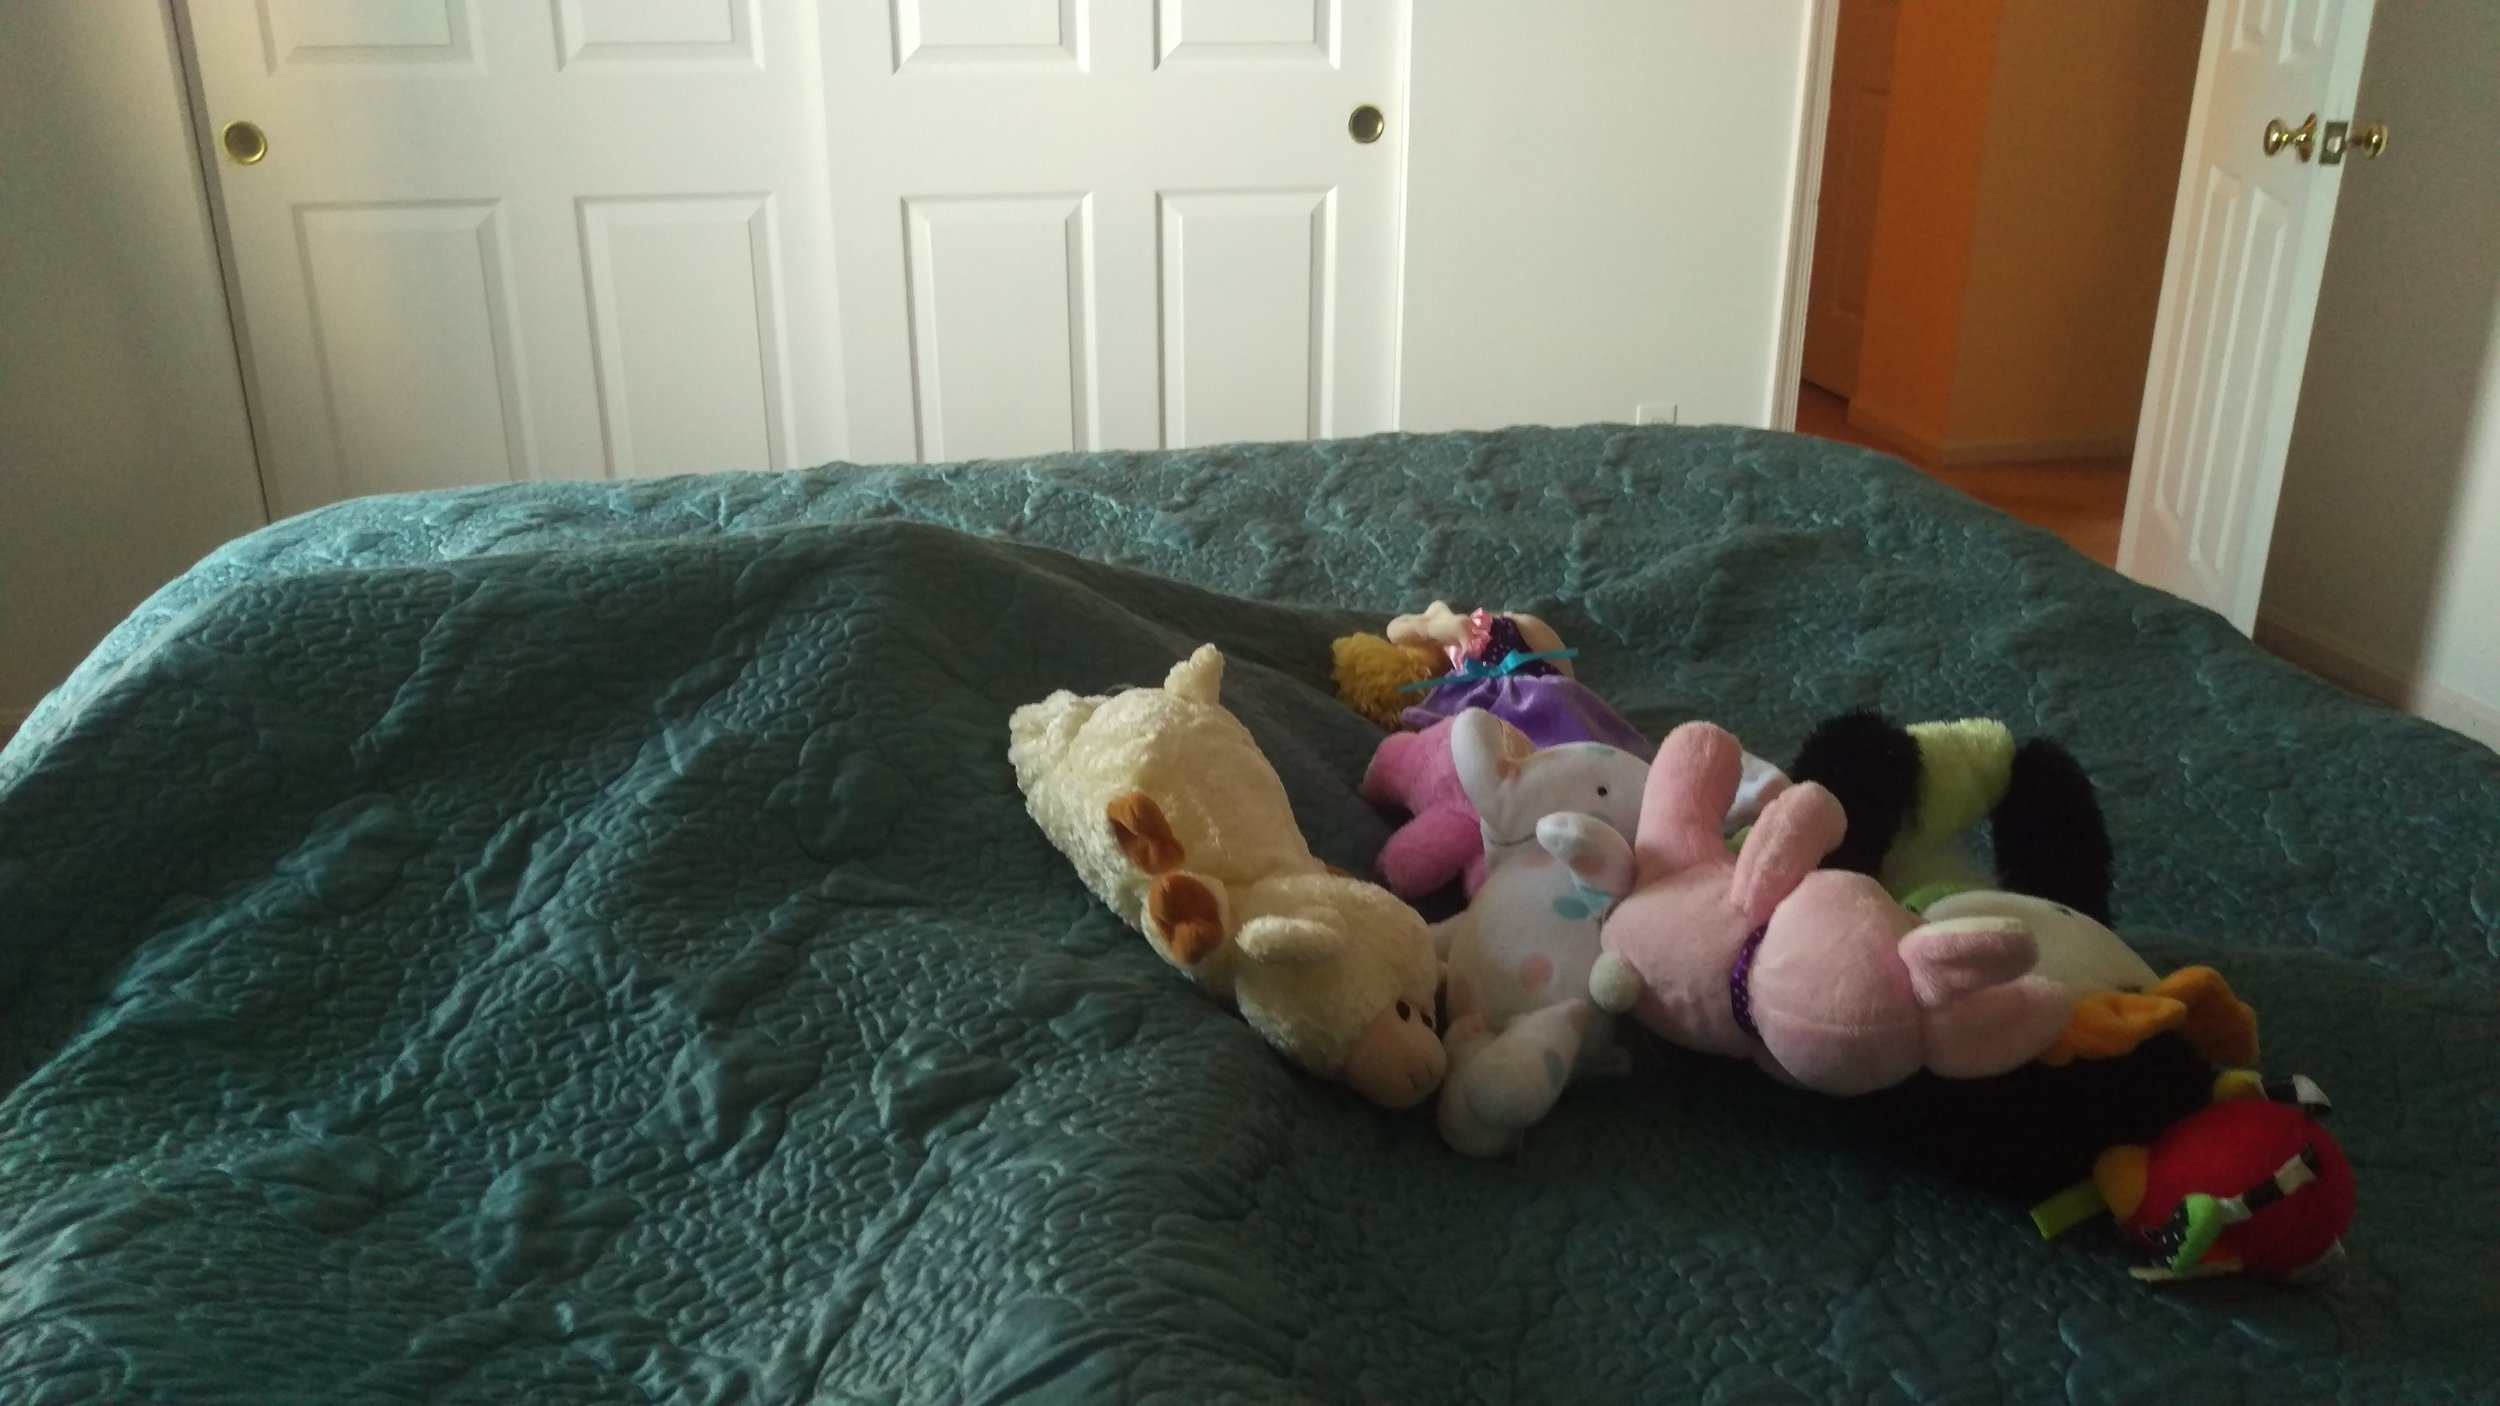 Since I was sick Cece made me stay in bed while she brought me toys